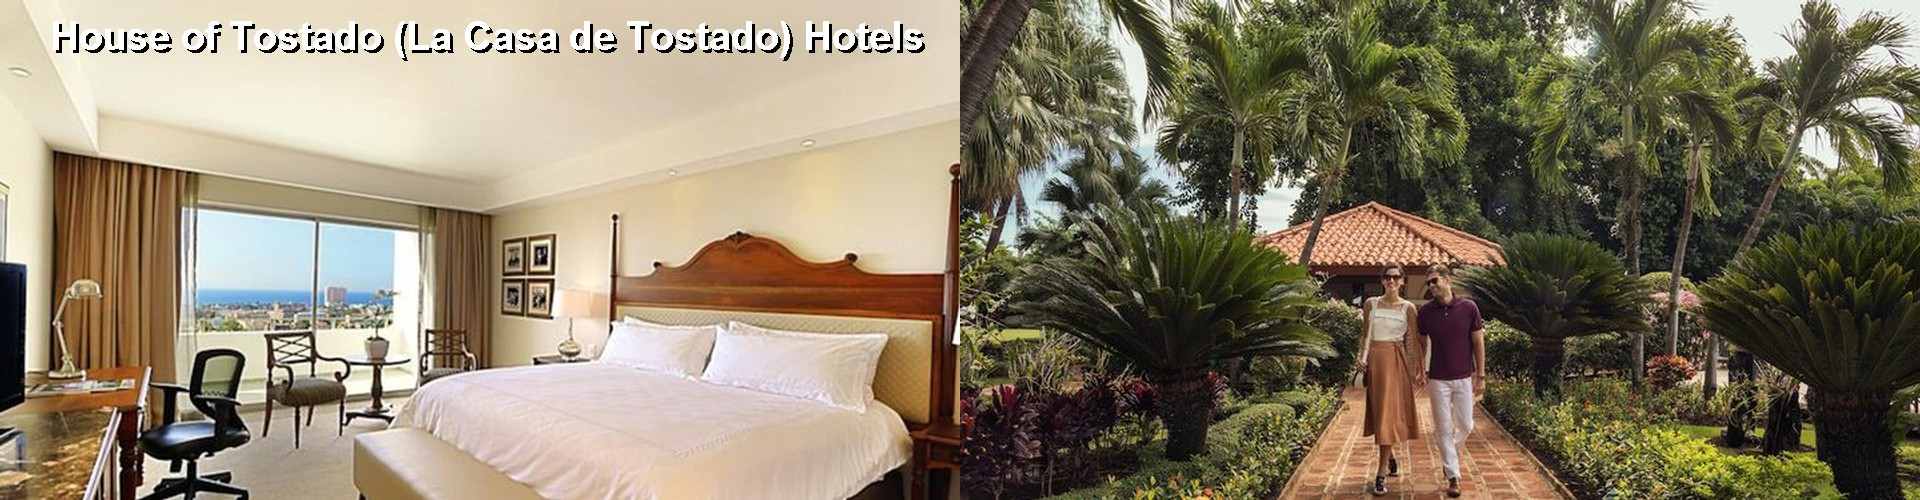 5 Best Hotels near House of Tostado (La Casa de Tostado)